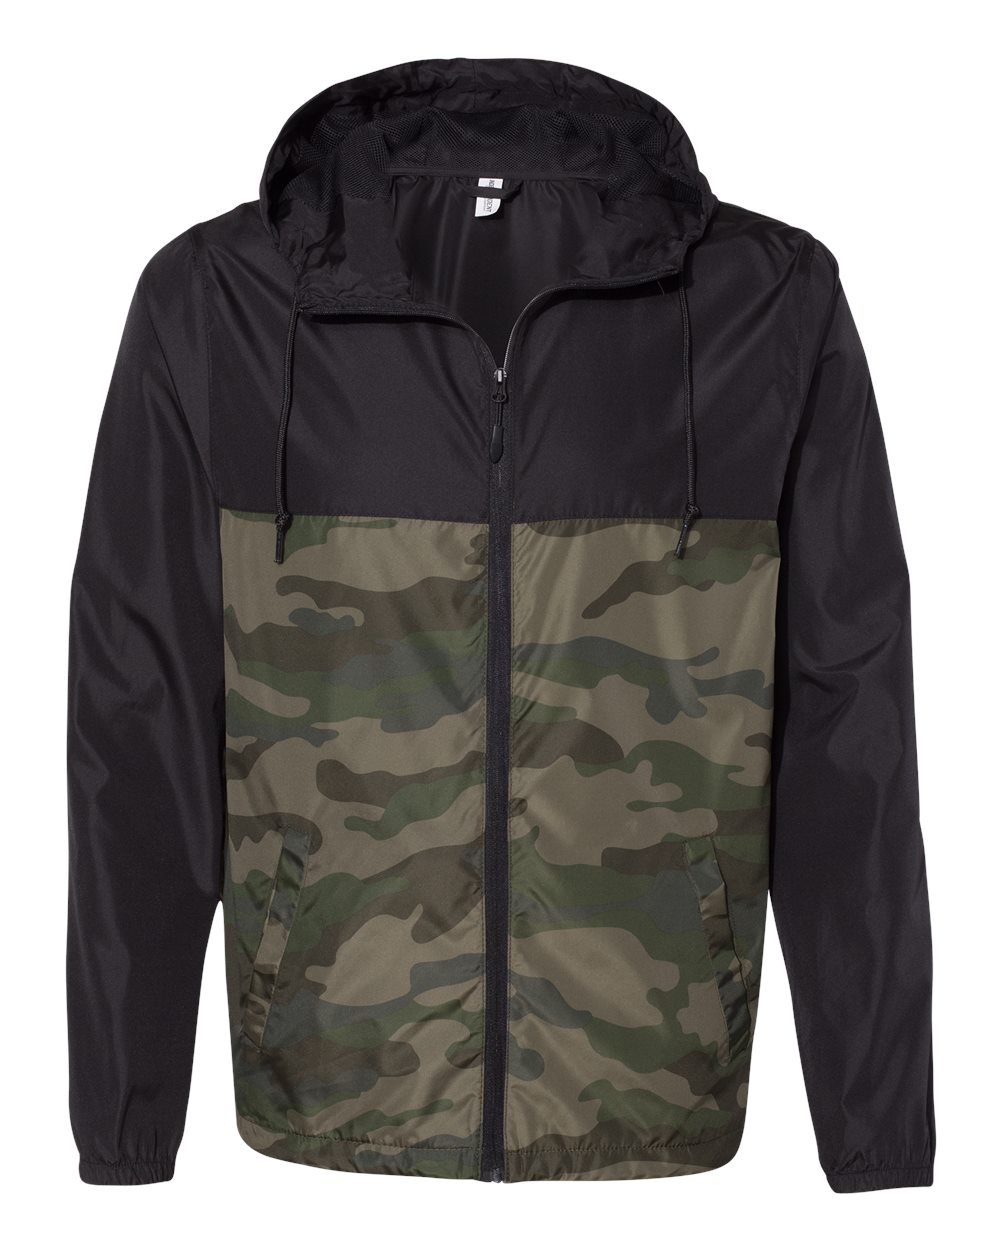 Independent_Trading_Co._EXP54LWZ_Black__Forest_Camo_Front_High.jpg